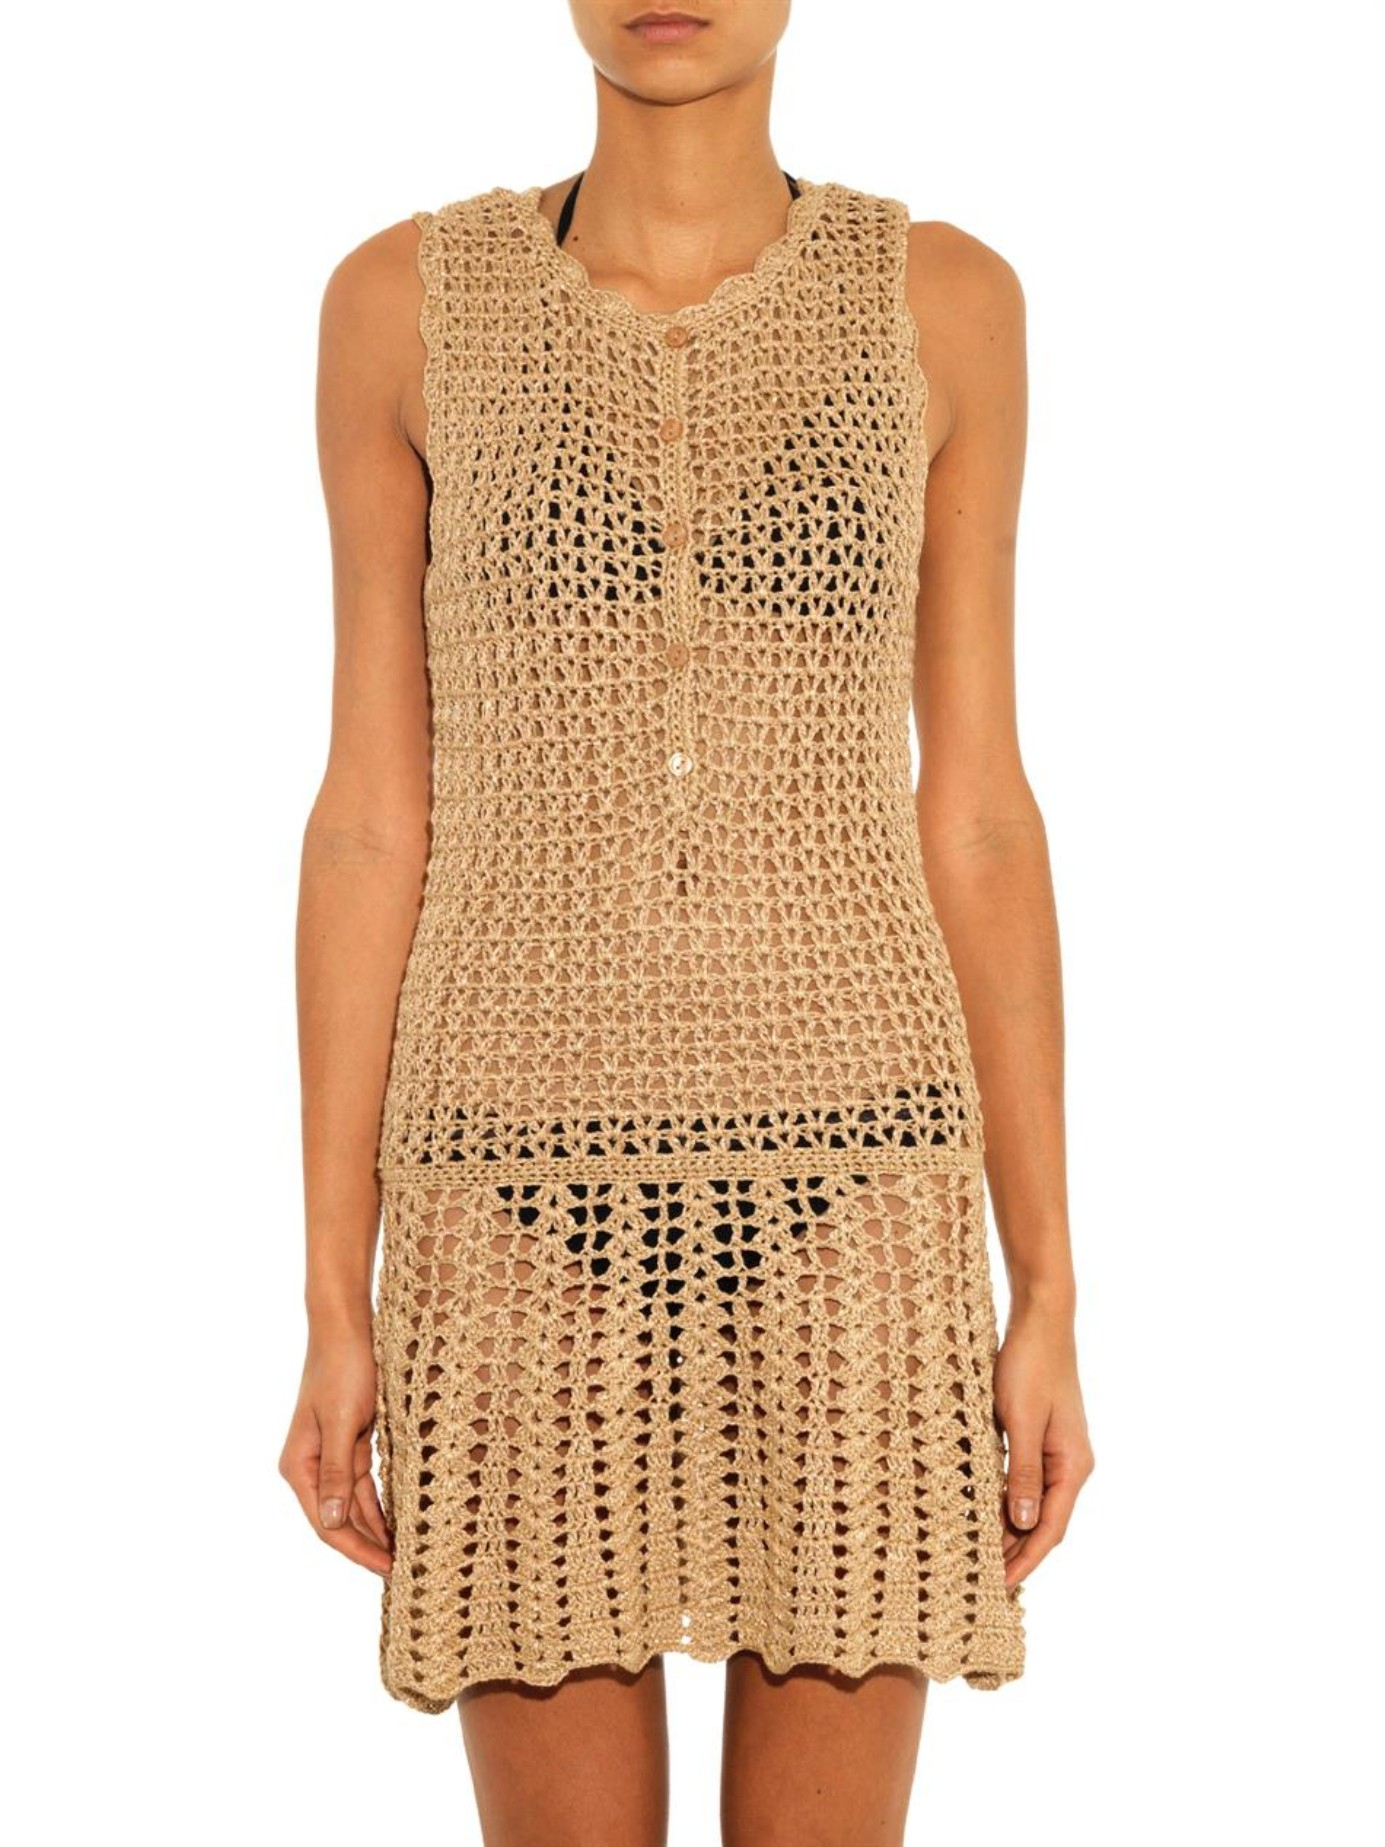 9211cb7ee3 Melissa Odabash Rosie Metallic-Crochet Dress in Metallic - Lyst